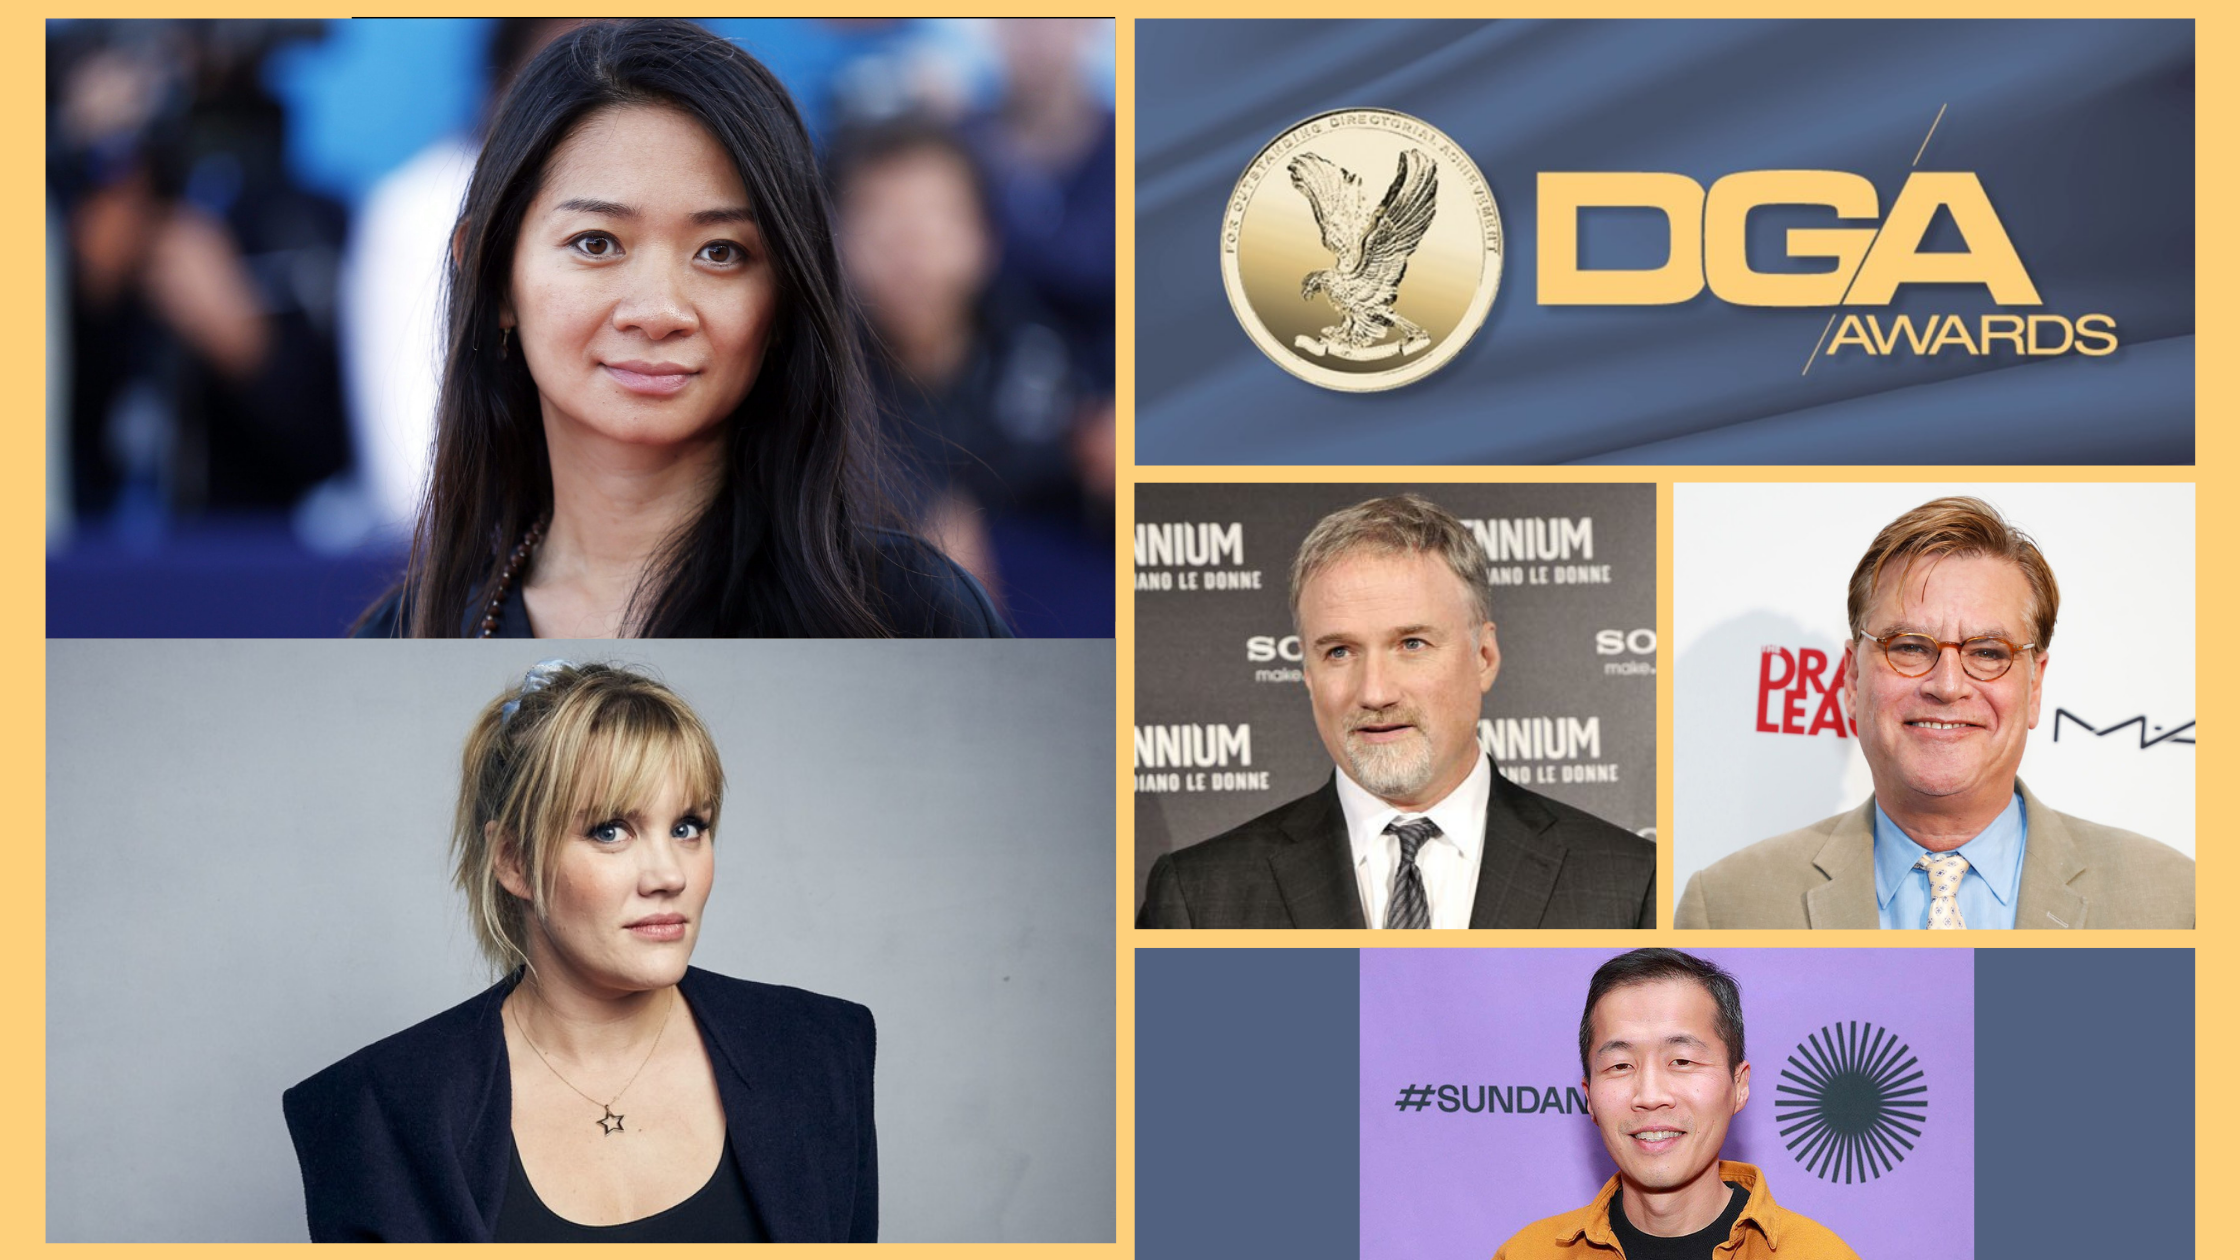 Nominations DGA Awards 2021